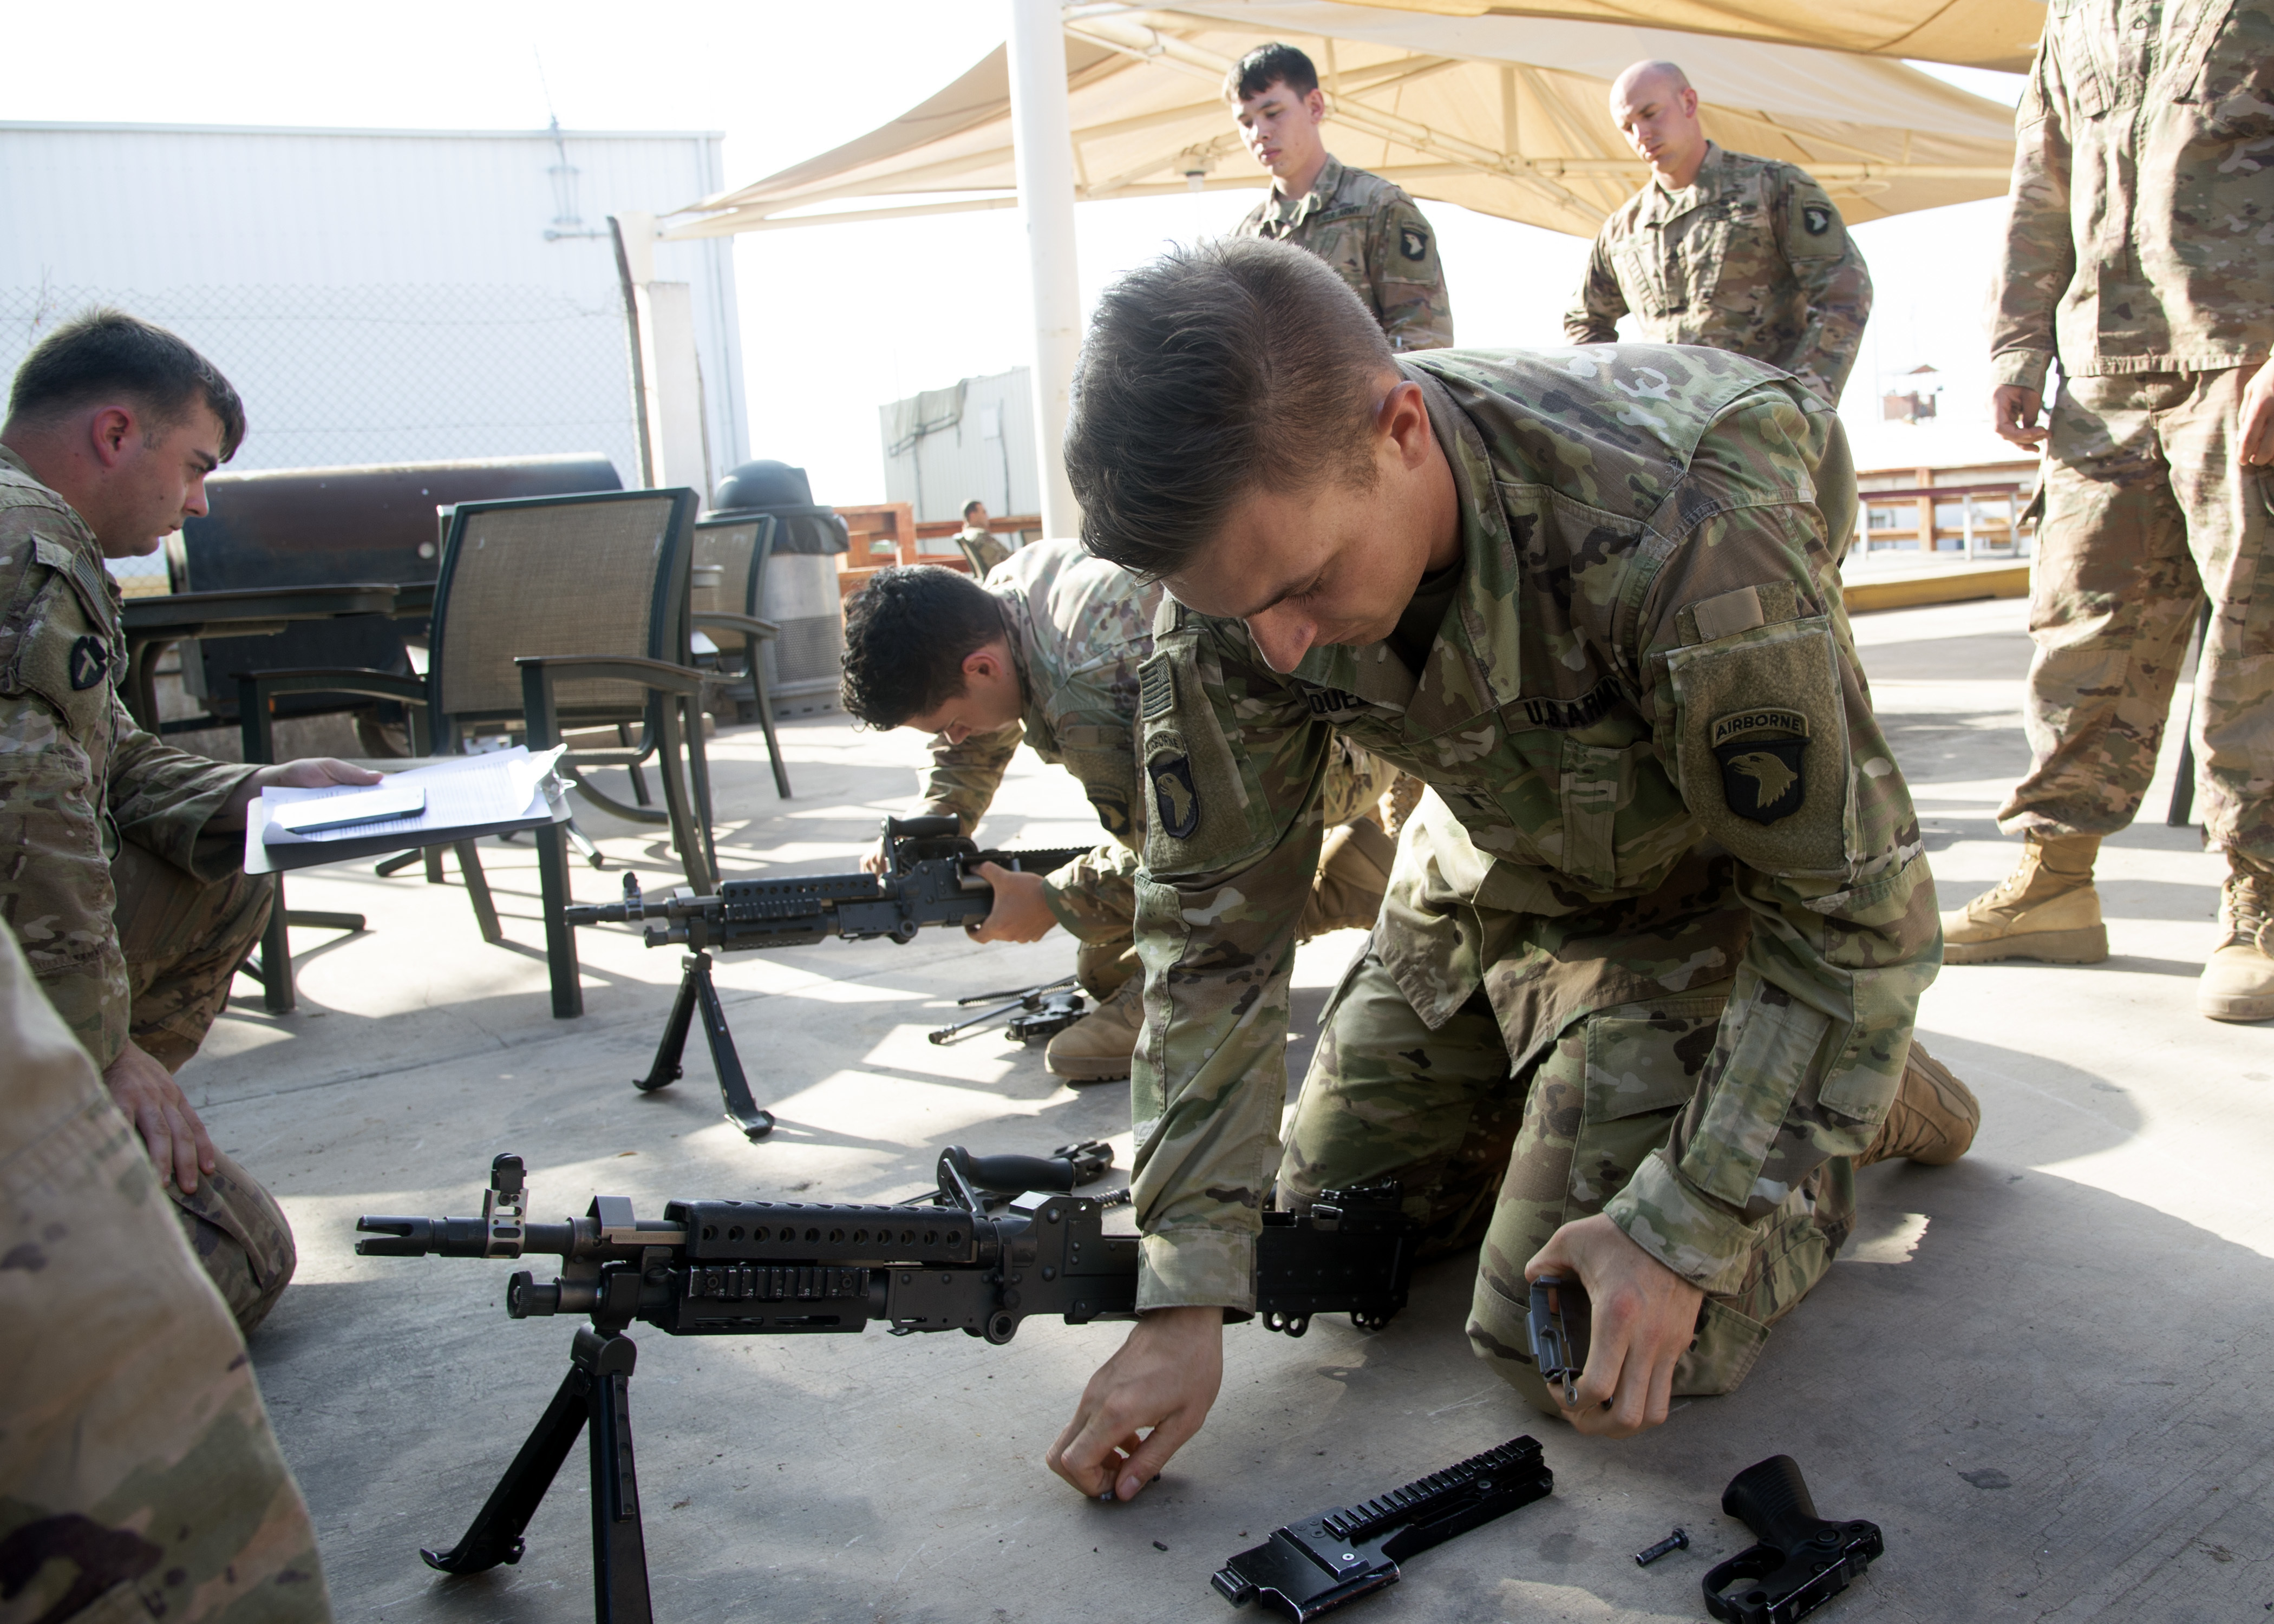 U.S. Army 1st Lt. Anthony Mosqueda, a Soldier from Bravo Company 1-26 Infantry, 101st Airborne Division, East Africa Response Force, assigned to Combined Joint Task Force-Horn of Africa (CJTF-HOA), disassembles an M240 machine gun during the Joint Warrior Competition (JWC) at Camp Lemonnier, Djibouti, Feb. 28, 2019. The JWC was open to U.S. service members assigned to CJTF-HOA and Camp Lemonnier, and consisted of a 6-mile ruck march with participants carrying bags that weighed no less than 35 pounds, a timed first-aid administration challenge, a timed weapons disassembly and reassembly challenge, a timed essay writing contest, a joint physical training challenge and a combat fitness test. (U.S. Navy photo by Mass Communication Specialist 1st Class Nick Scott)